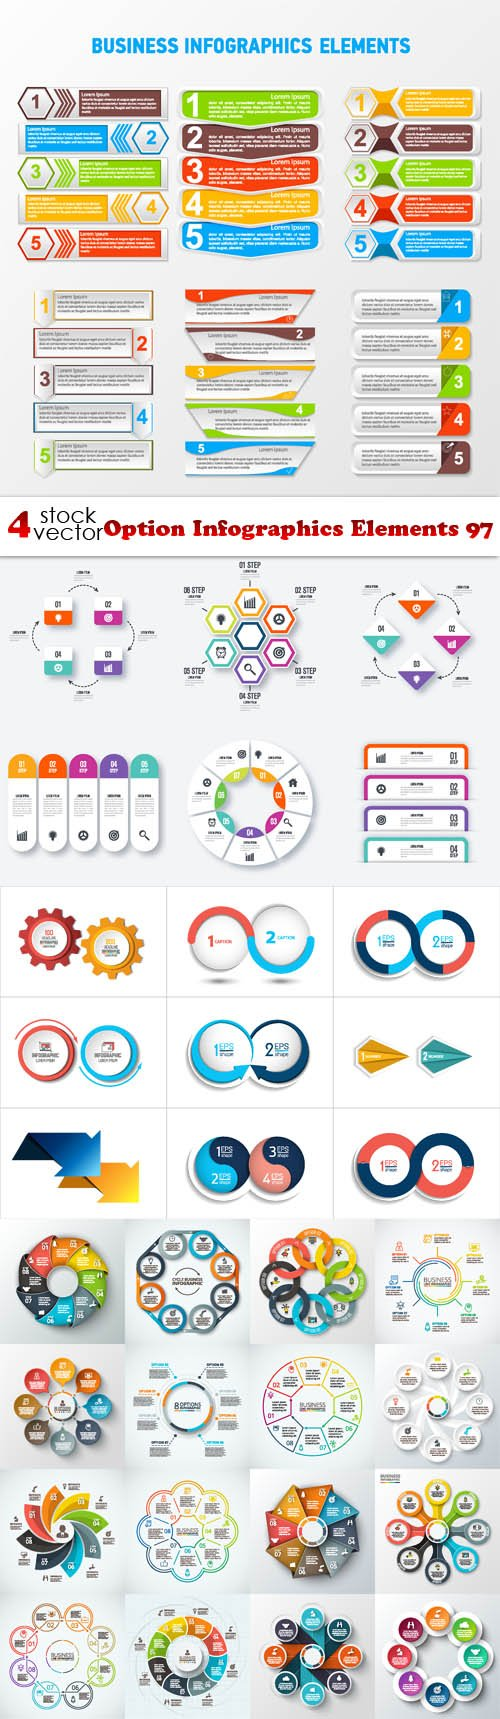 Vectors - Option Infographics Elements 97